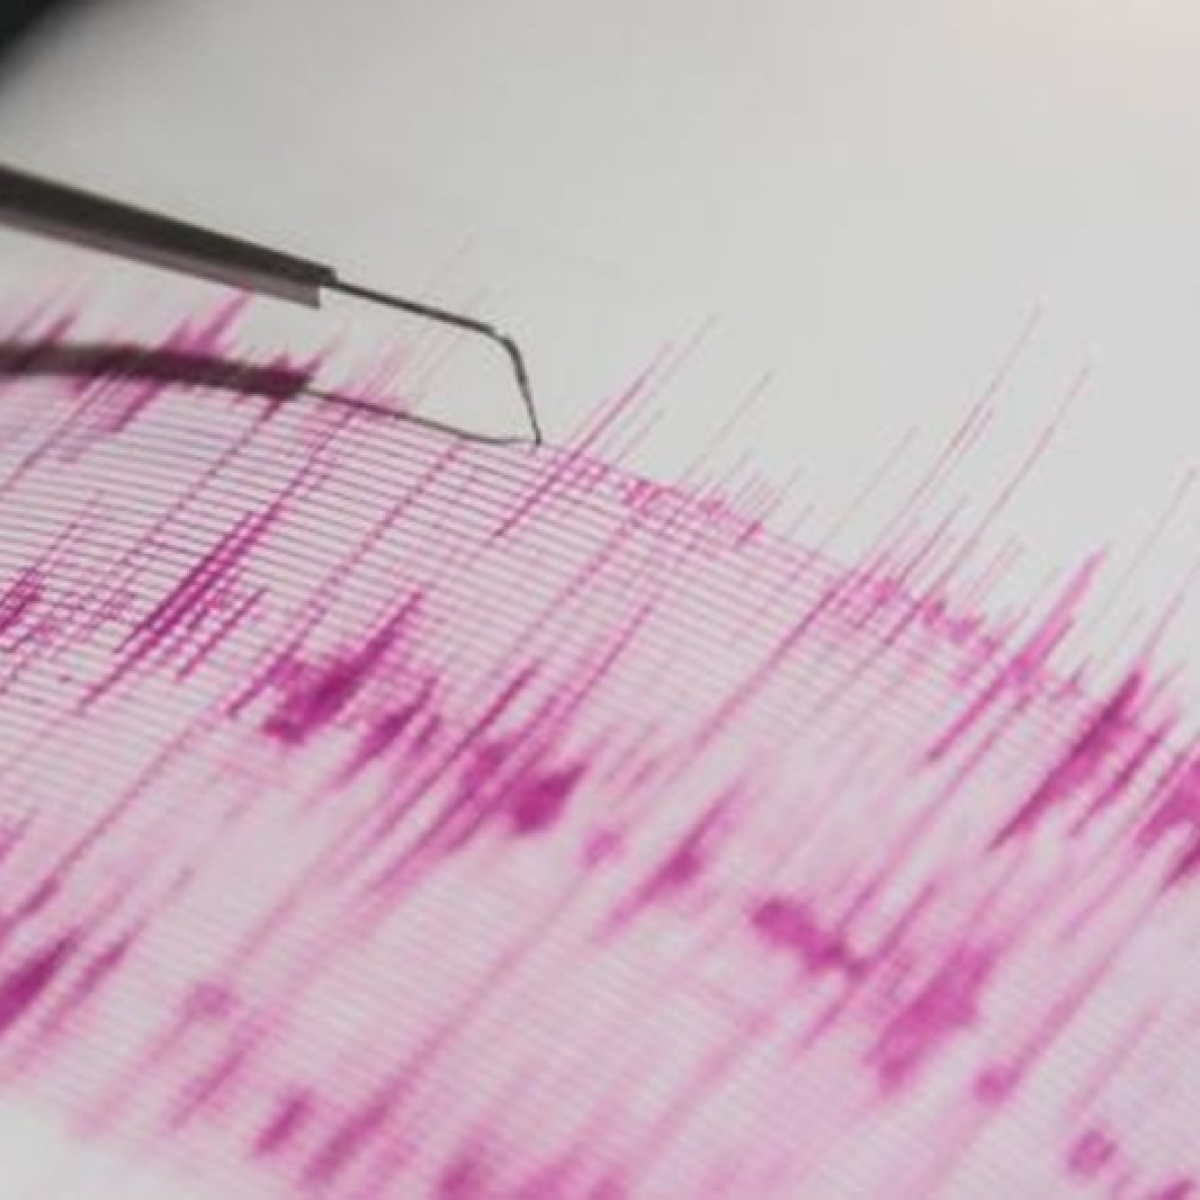 Earthquake of 3.0 magnitude hits Nagaon in Assam